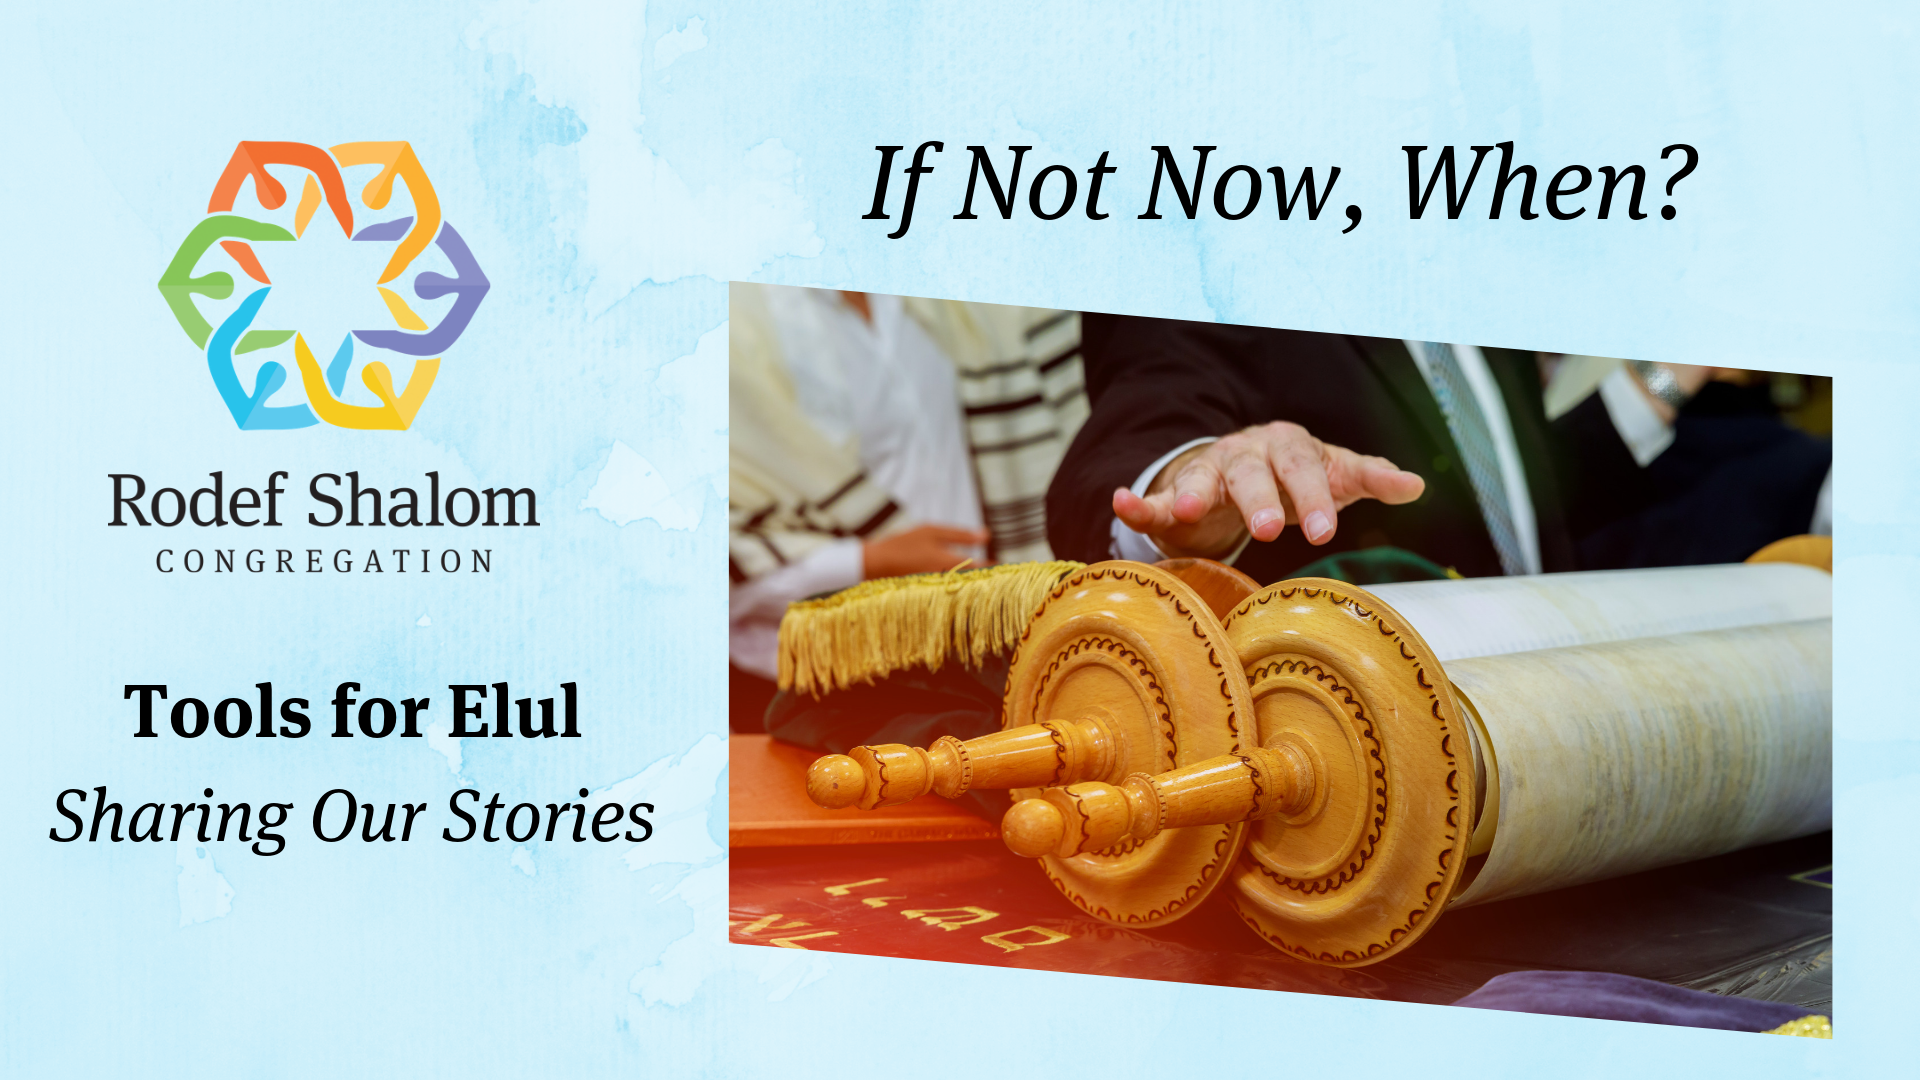 Tools for Elul Headers 8.27.19 (7).png